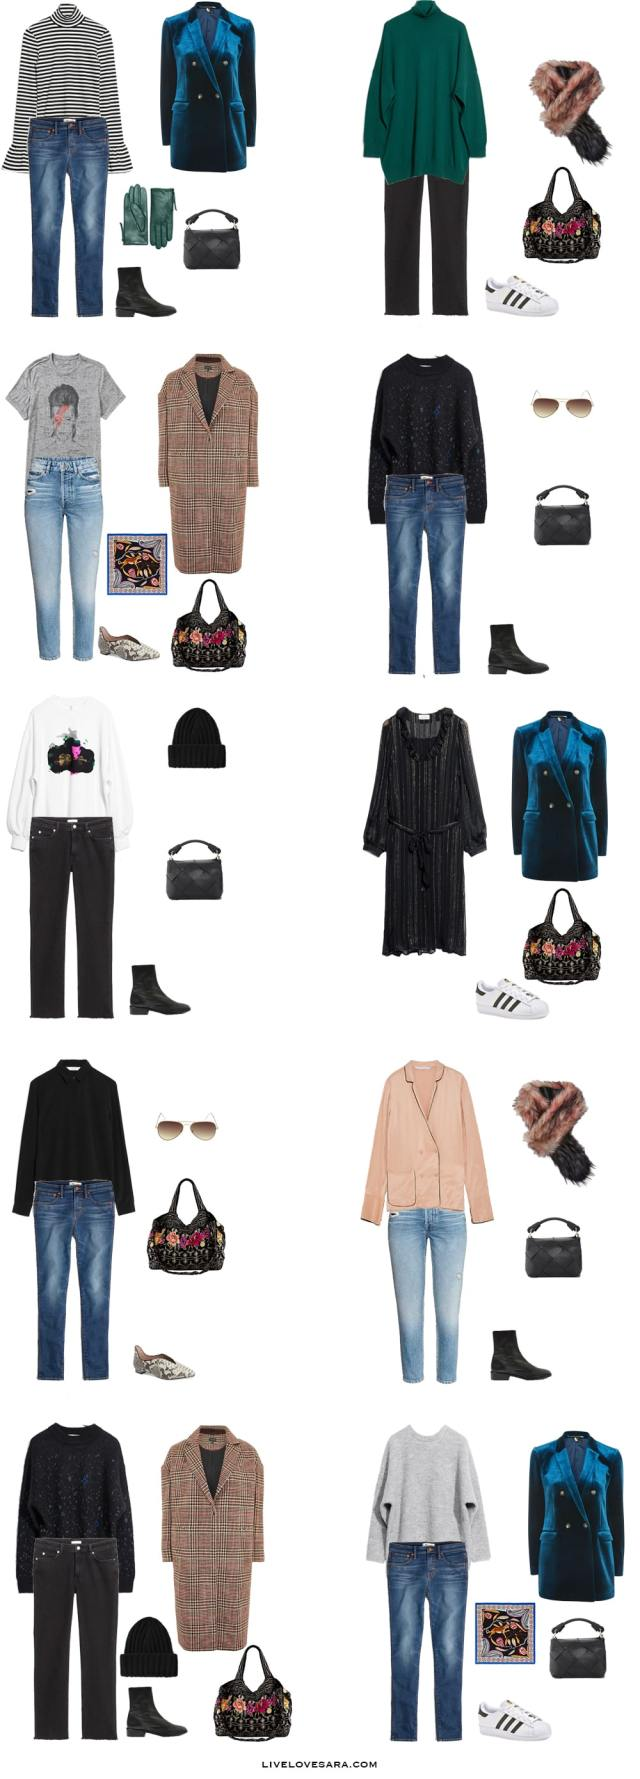 What to Pack for Ghent, Belgium Packing Light List Outfit Options 11-20 #packinglight #travellight #packinglist #travel #capsule #capsulewardrobe #livelovesara